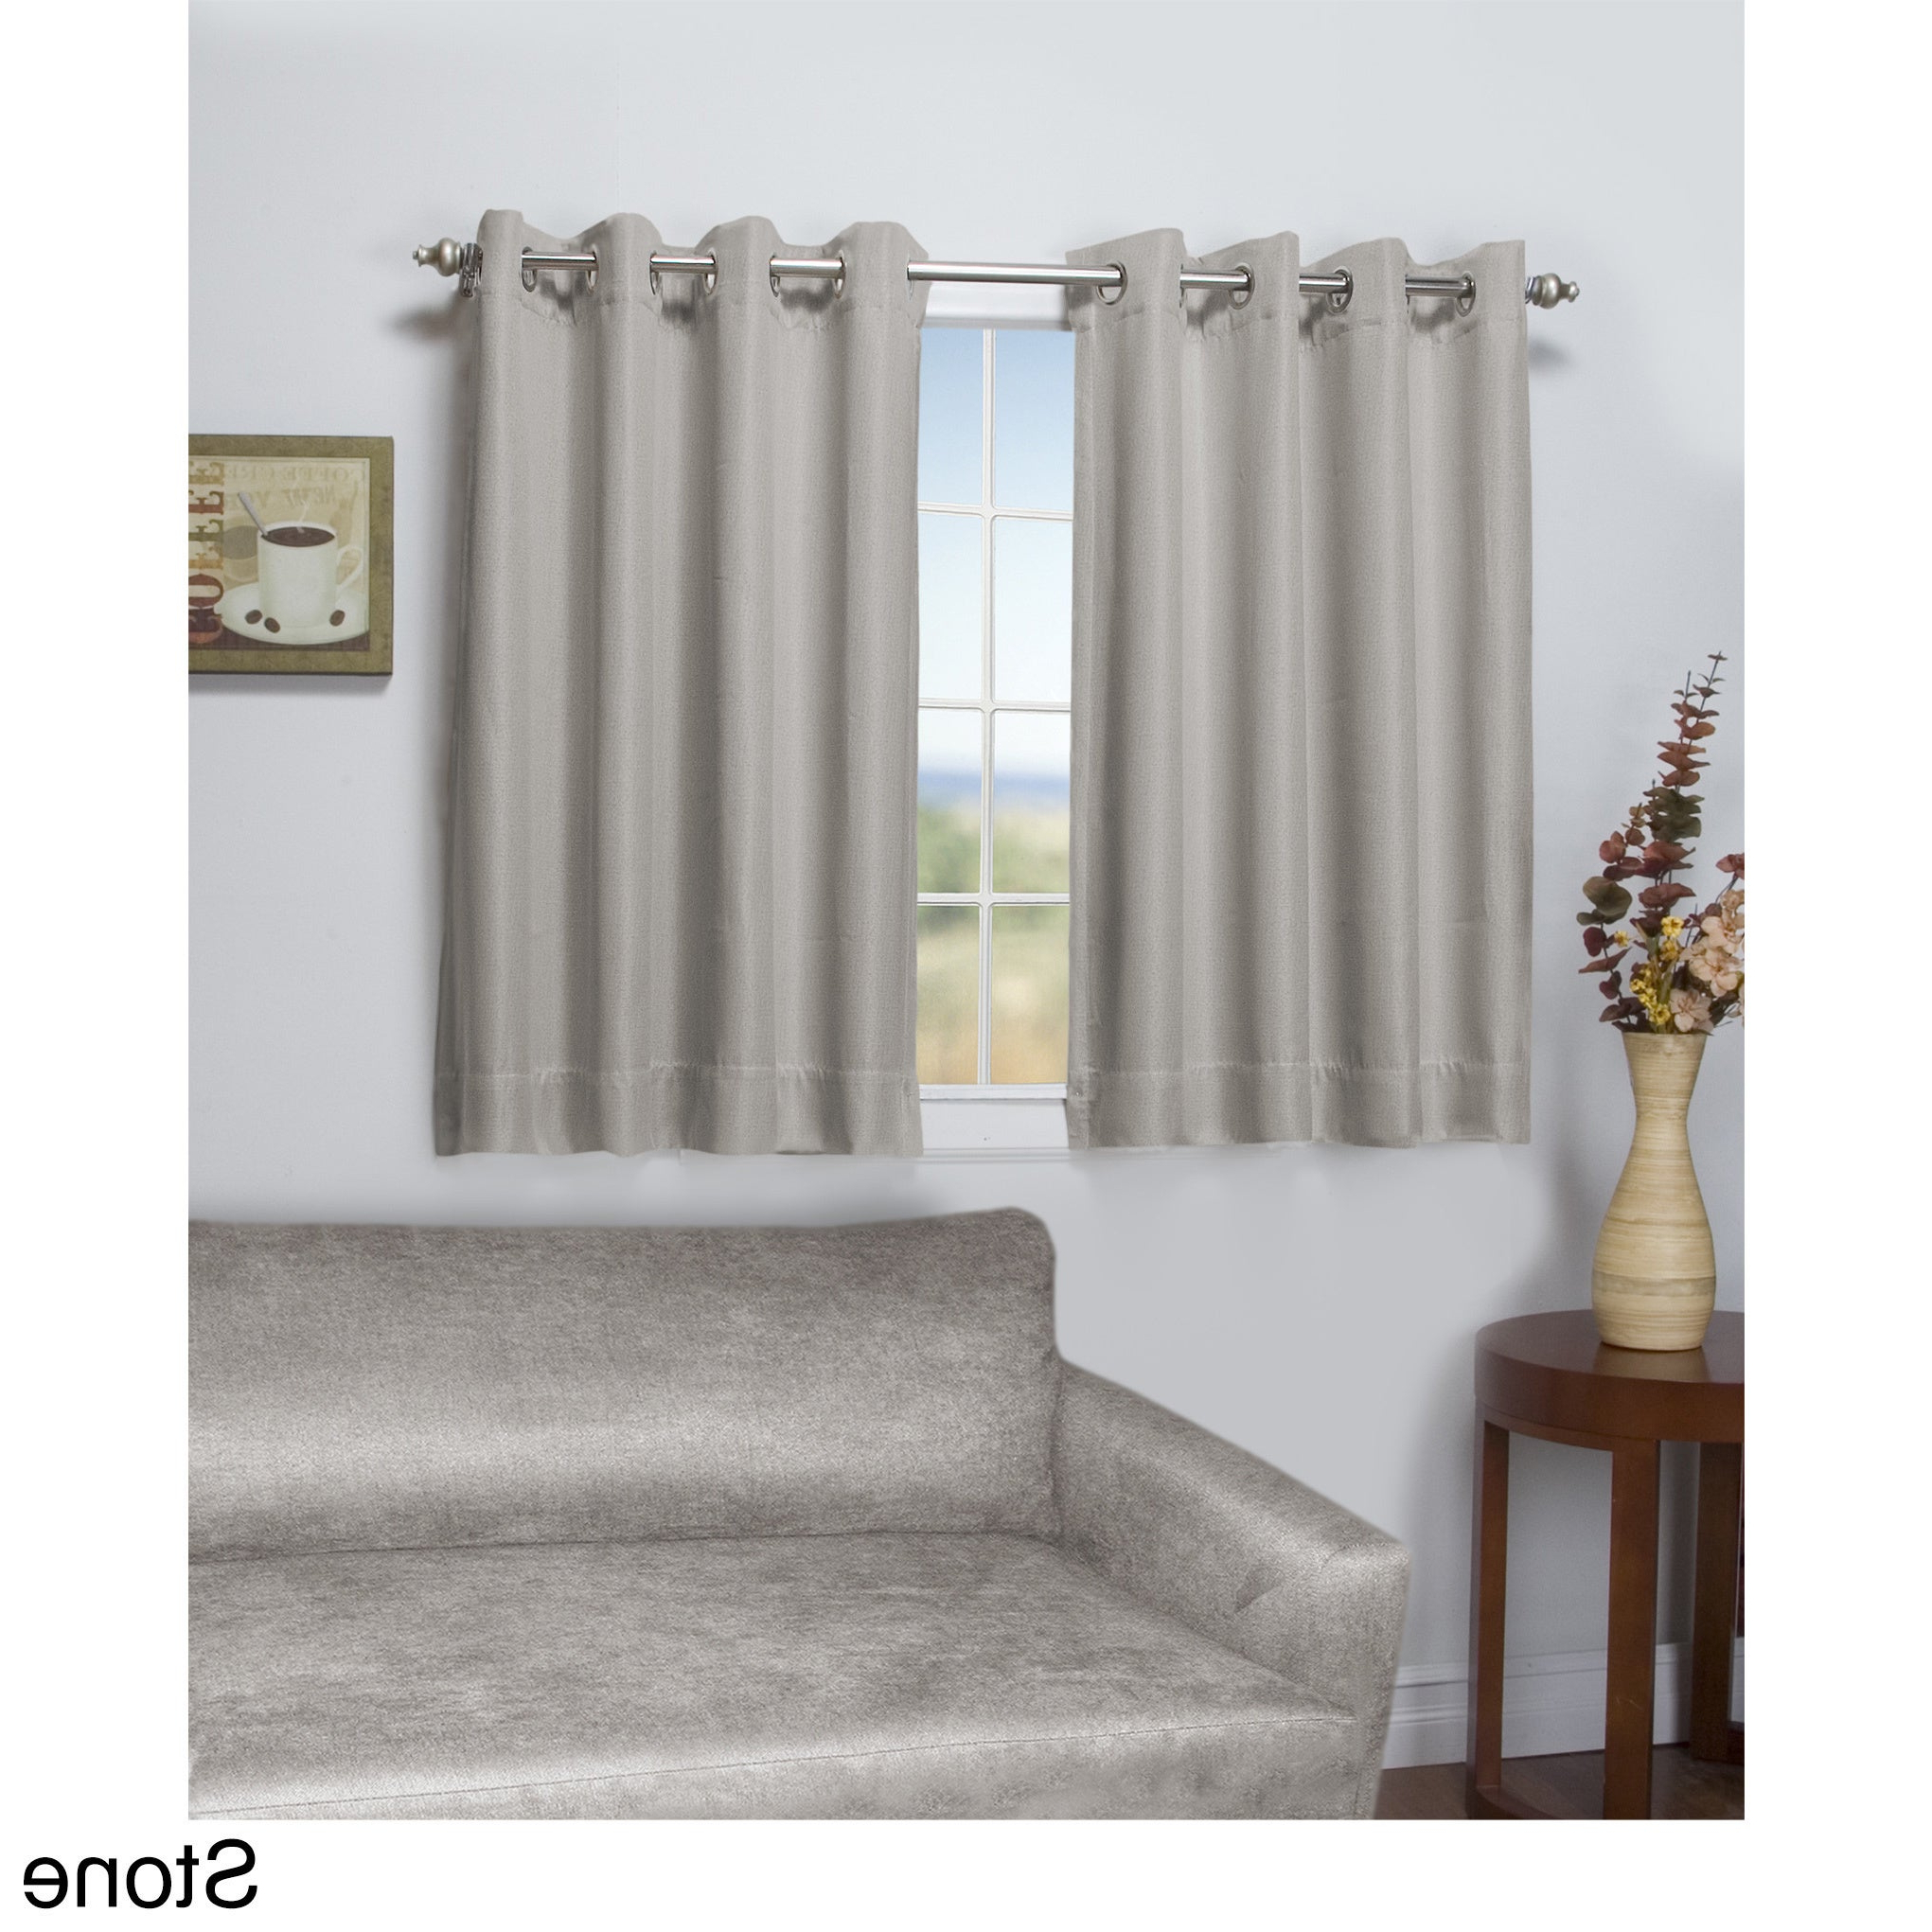 Preferred Tacoma Double Blackout Grommet Curtain Panel – Short Length Pertaining To Blackout Grommet Curtain Panels (View 17 of 20)